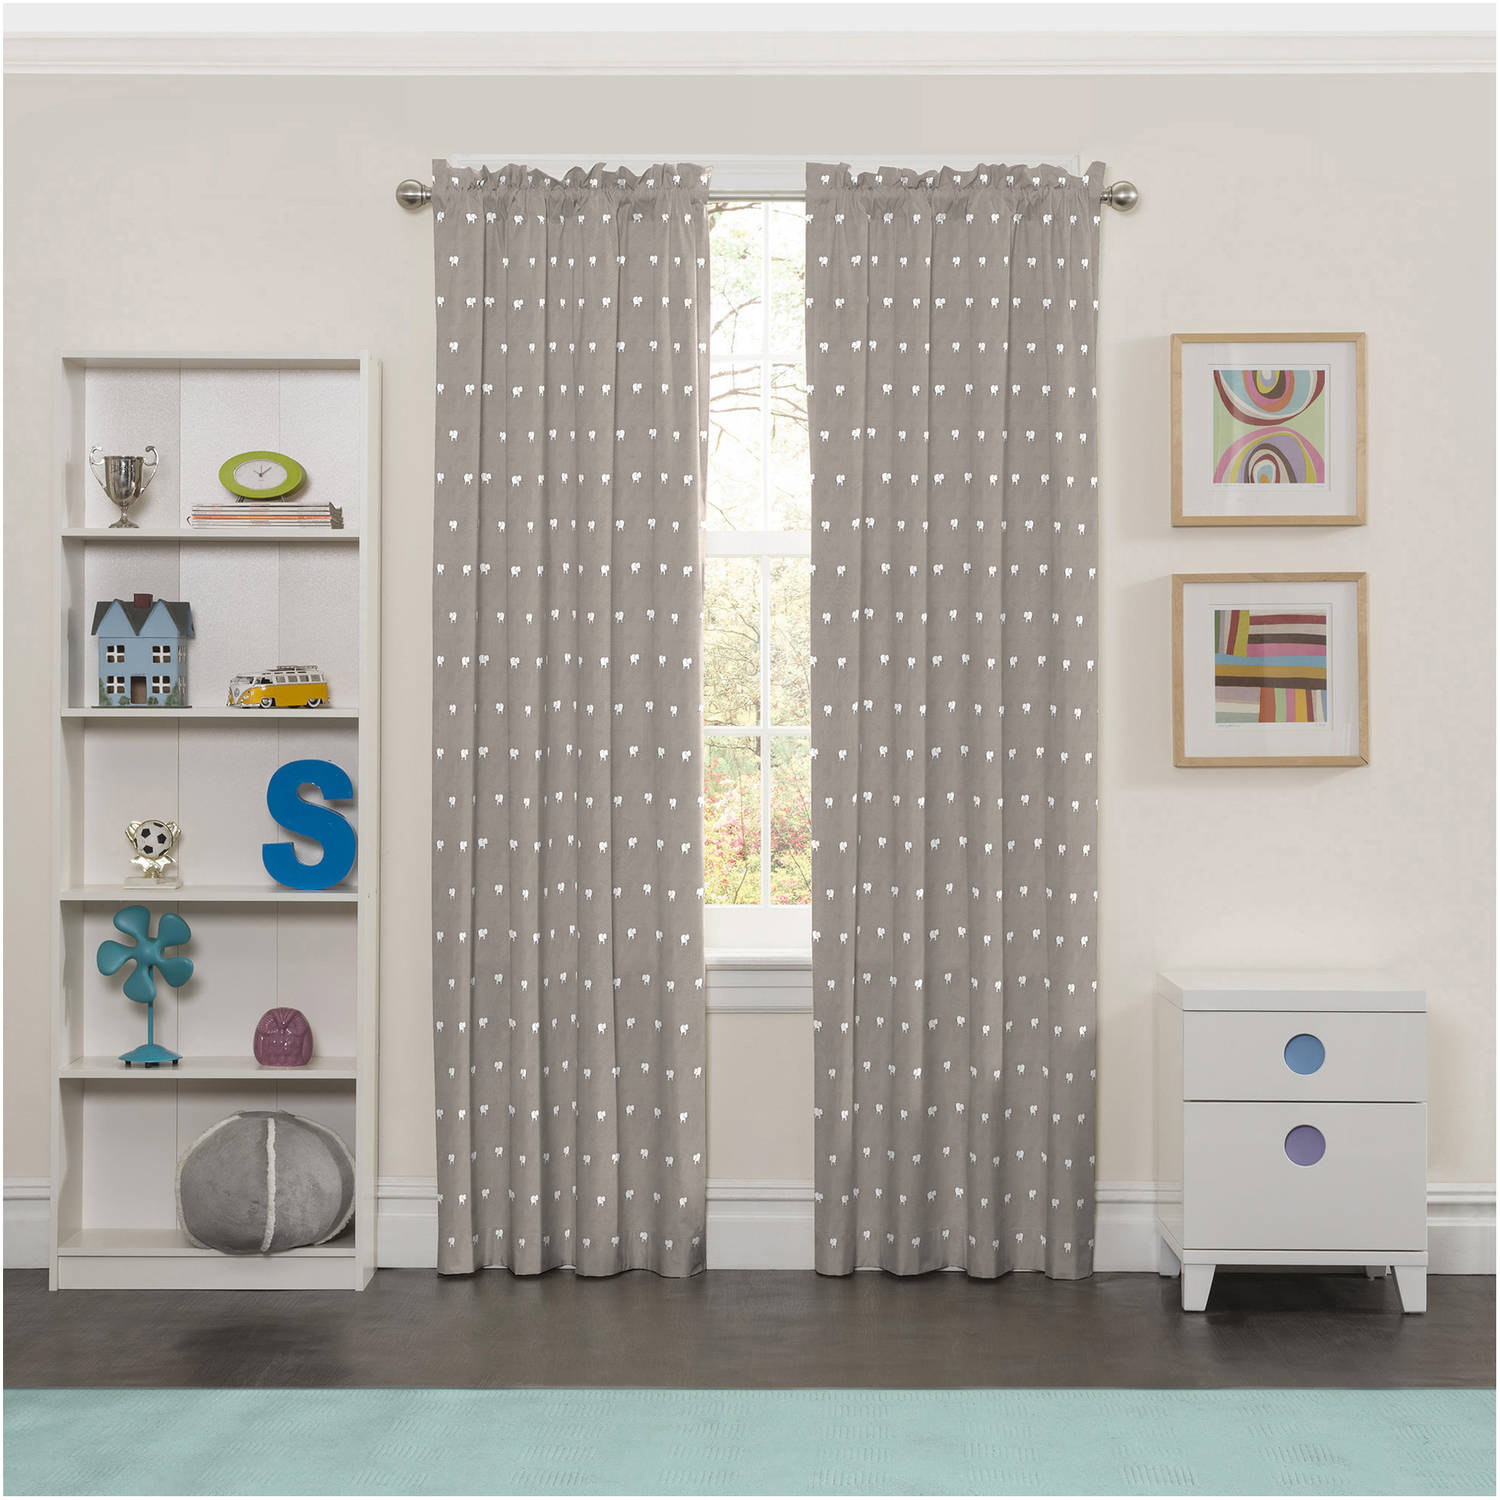 Eclipse Elephant Print Kids Bedroom Blackout Curtain Panel